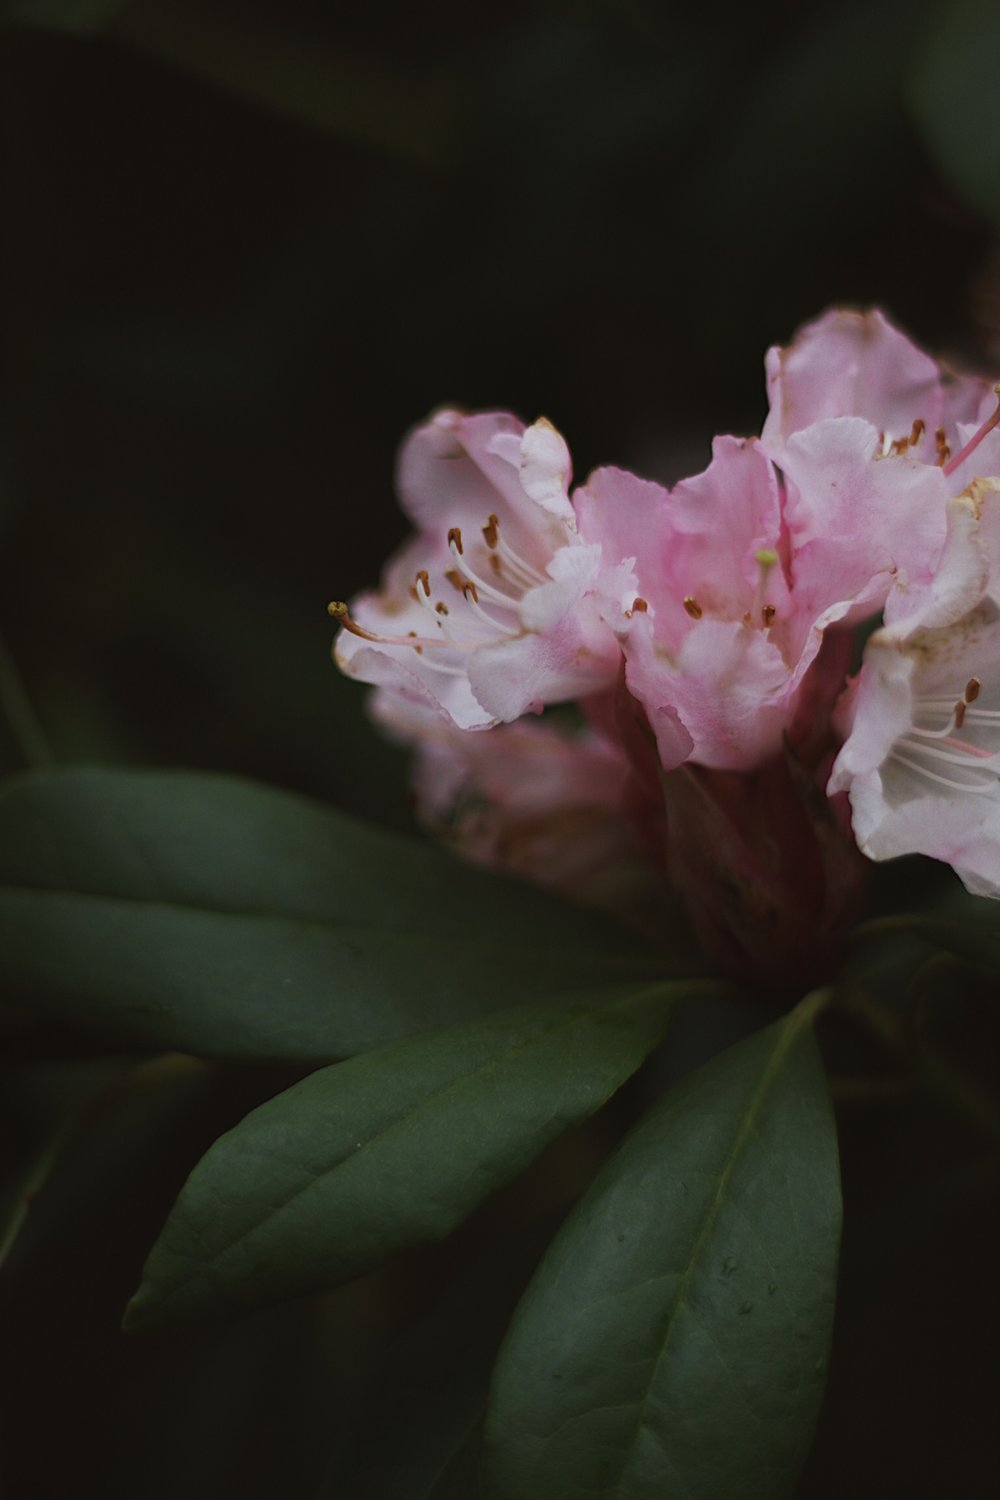 Rhododendron pink flower